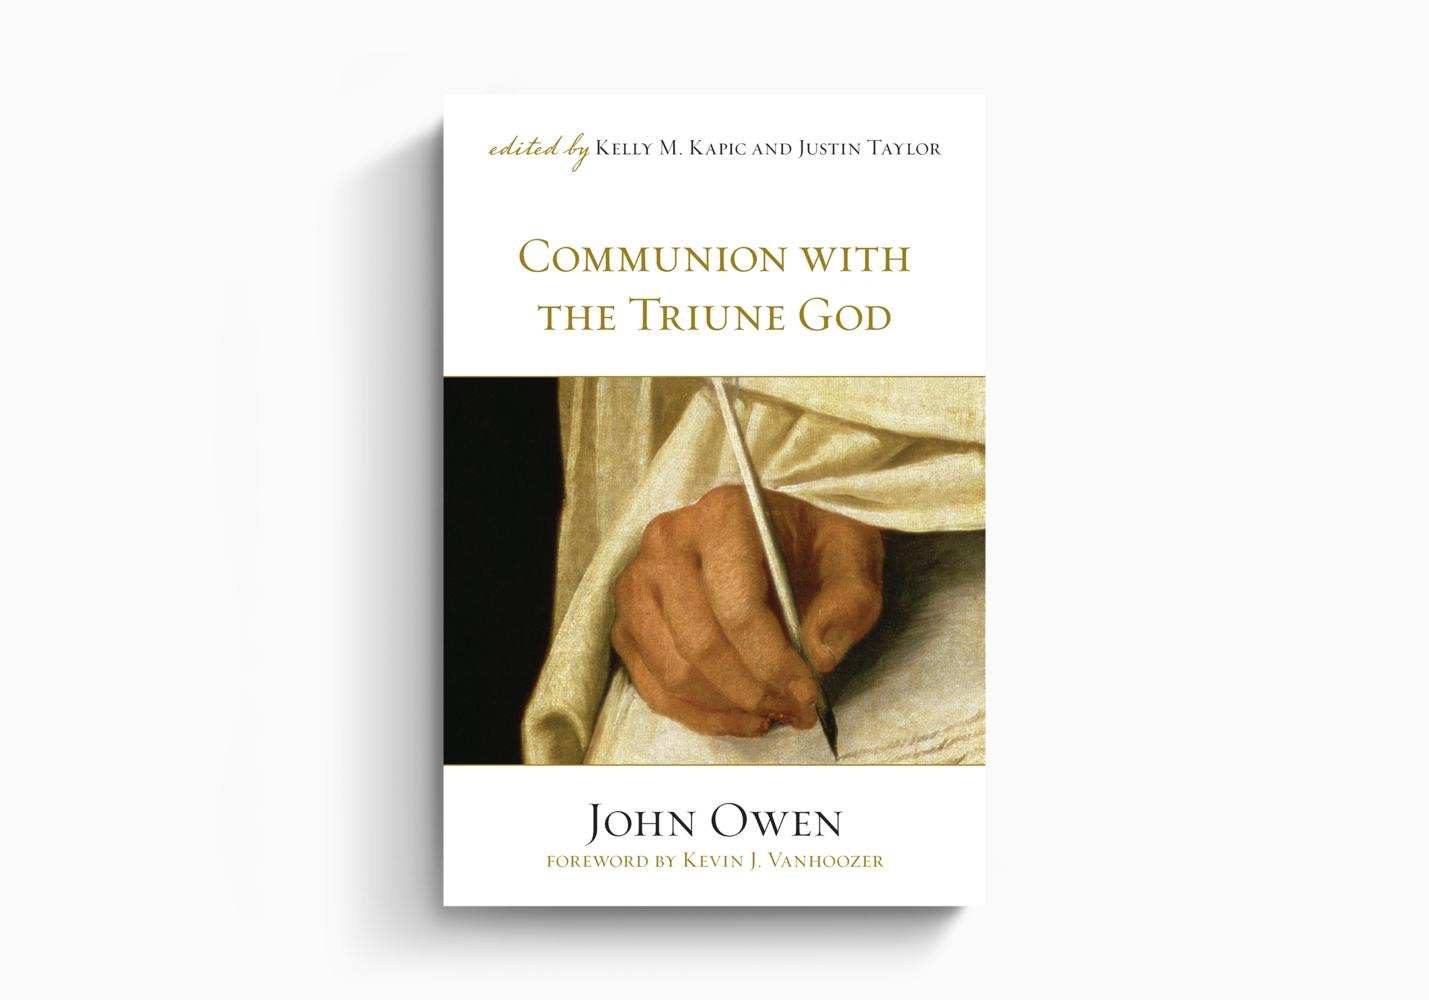 Communion with the Triune God